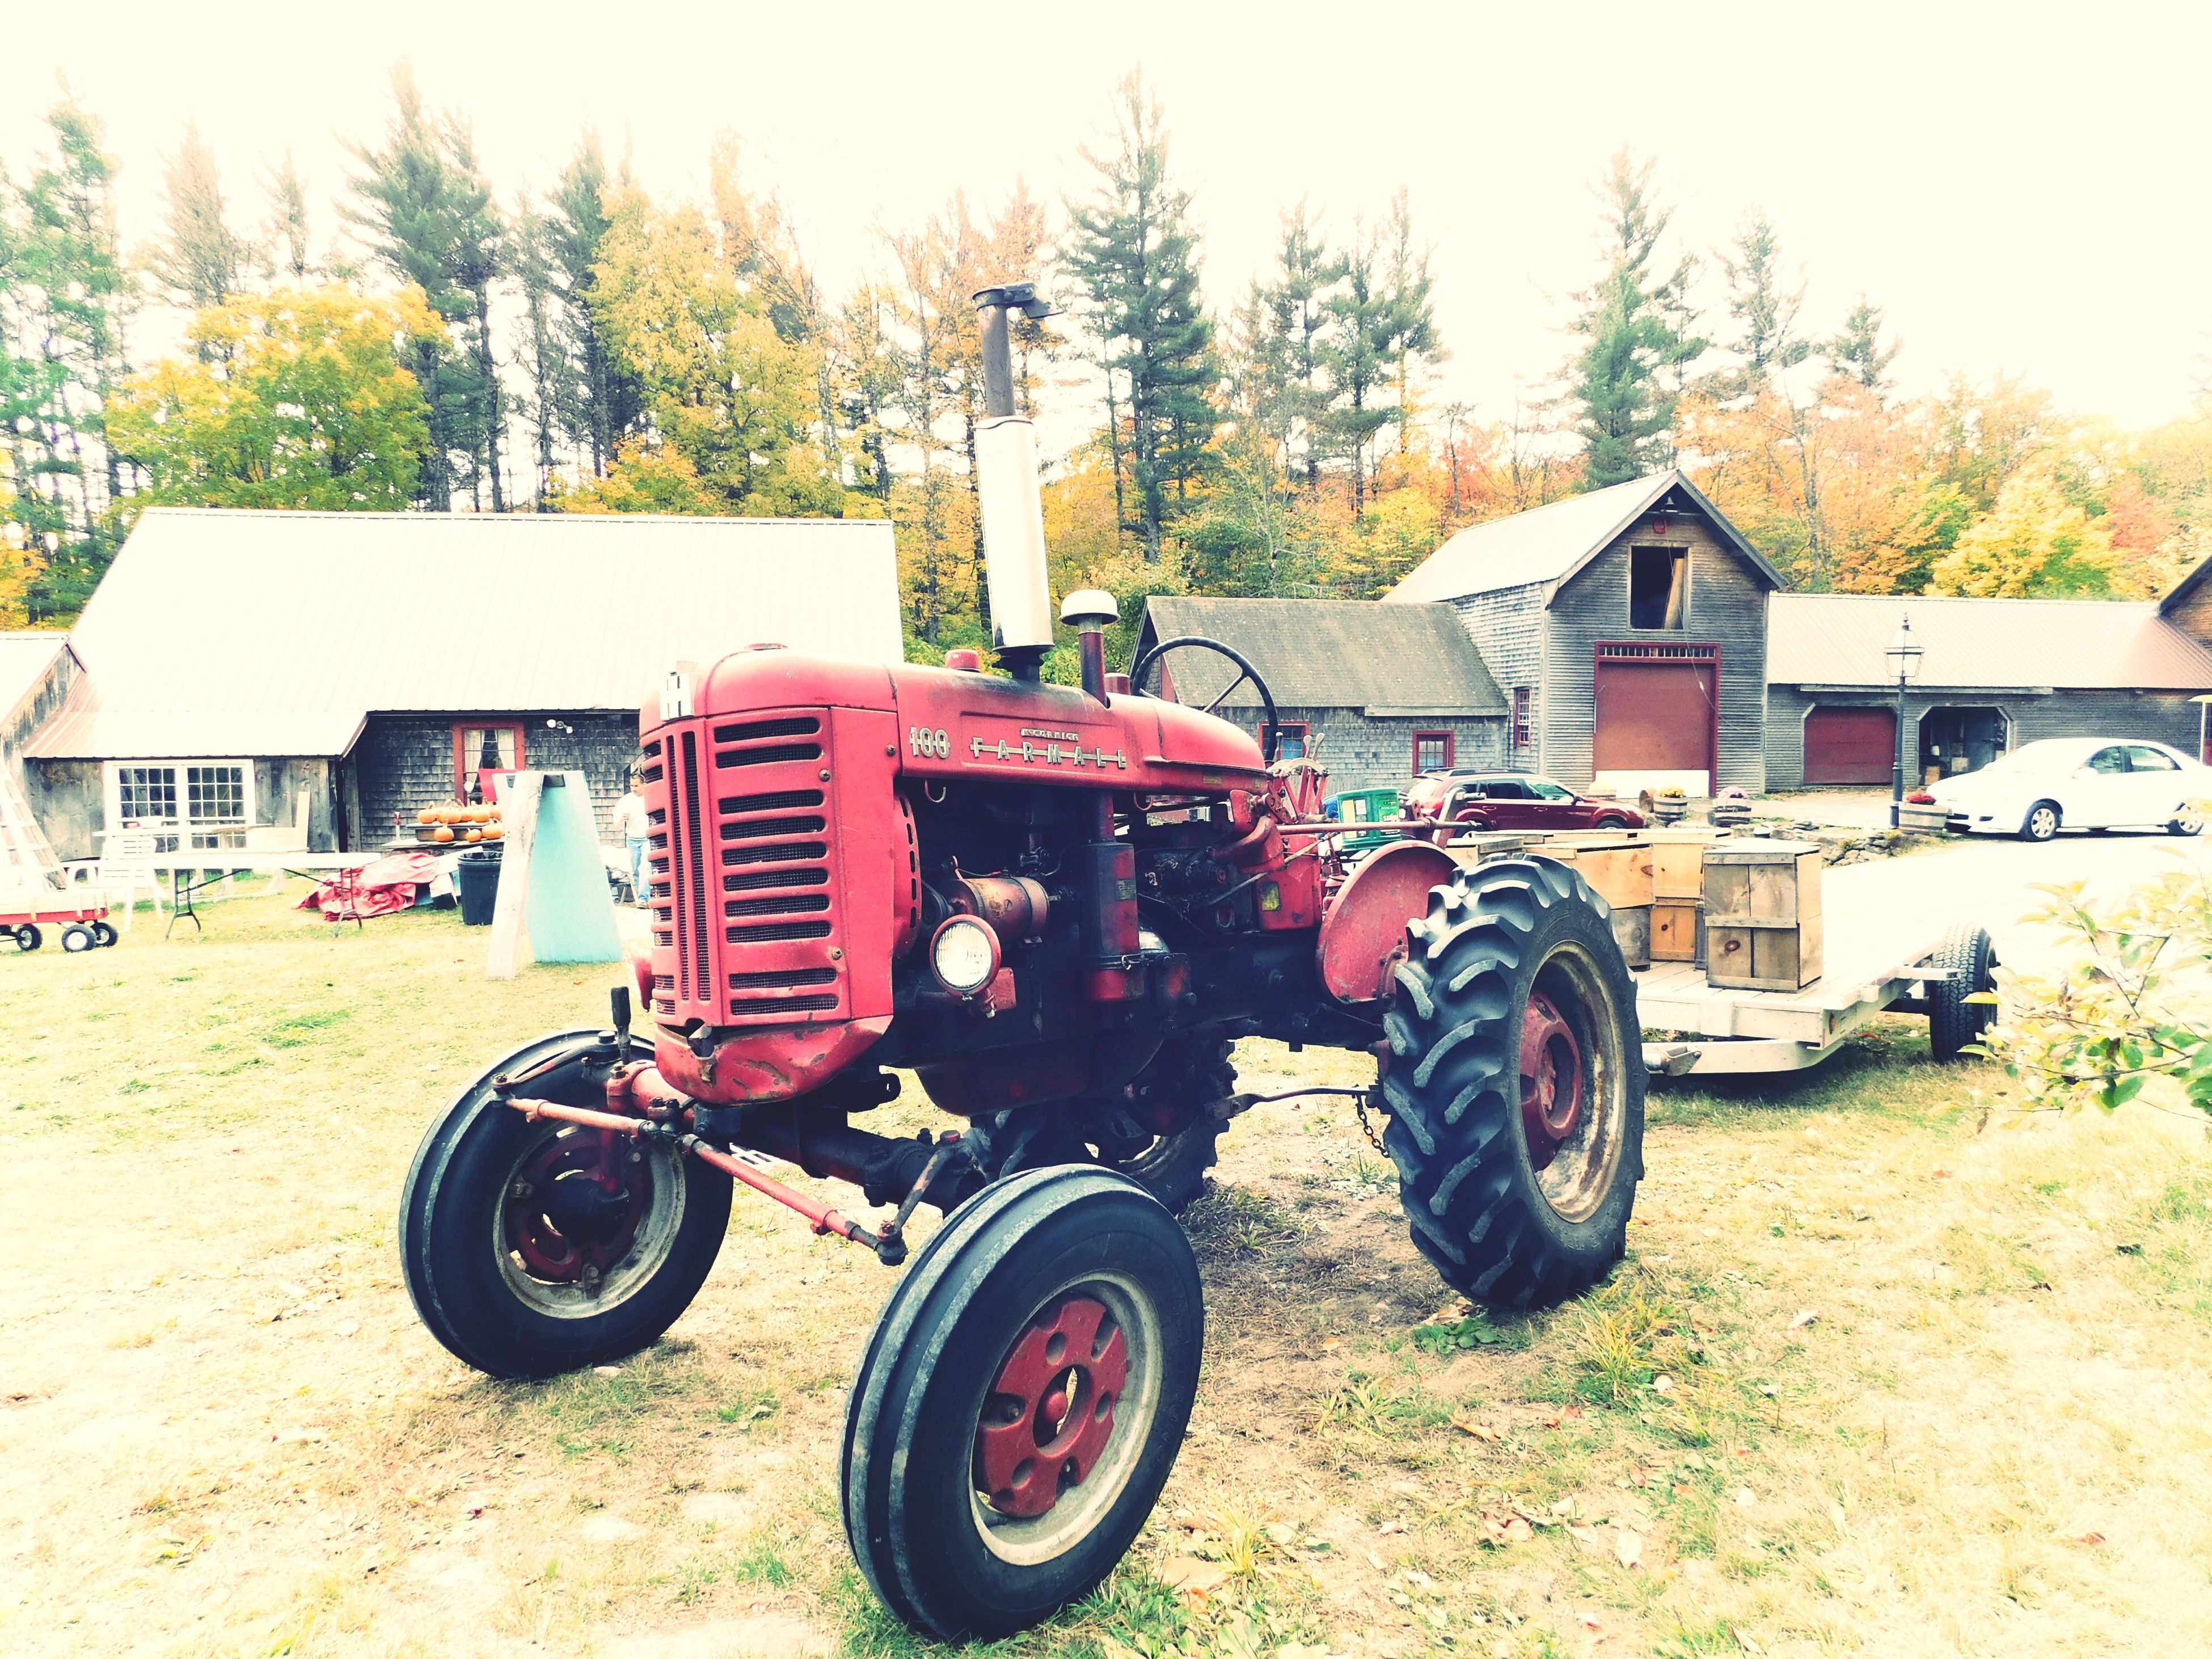 transportation, mode of transport, land vehicle, tree, outdoors, day, no people, tractor, sky